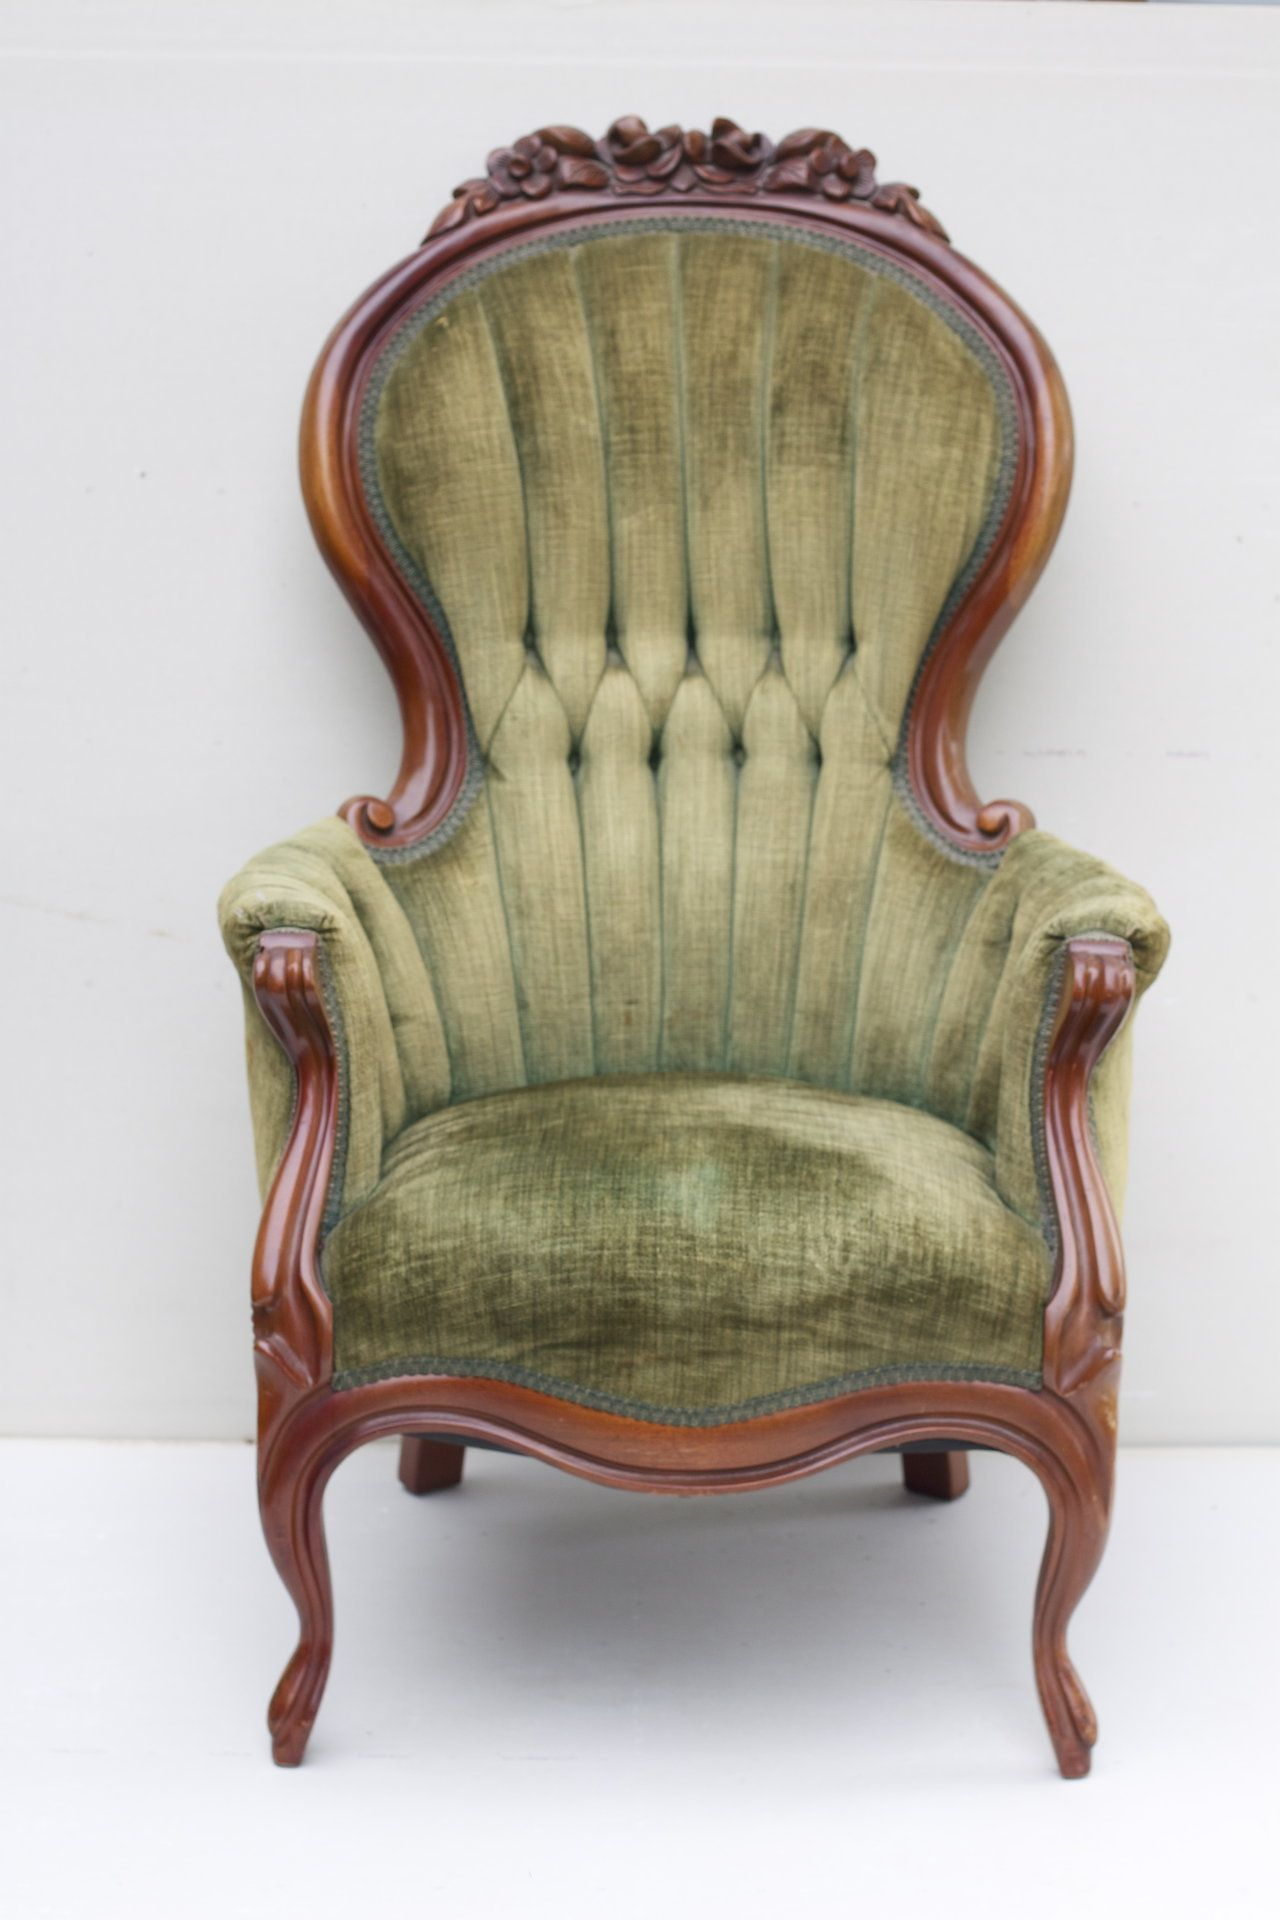 Old Antique Chair - Old Antique Chair Antique Furniture